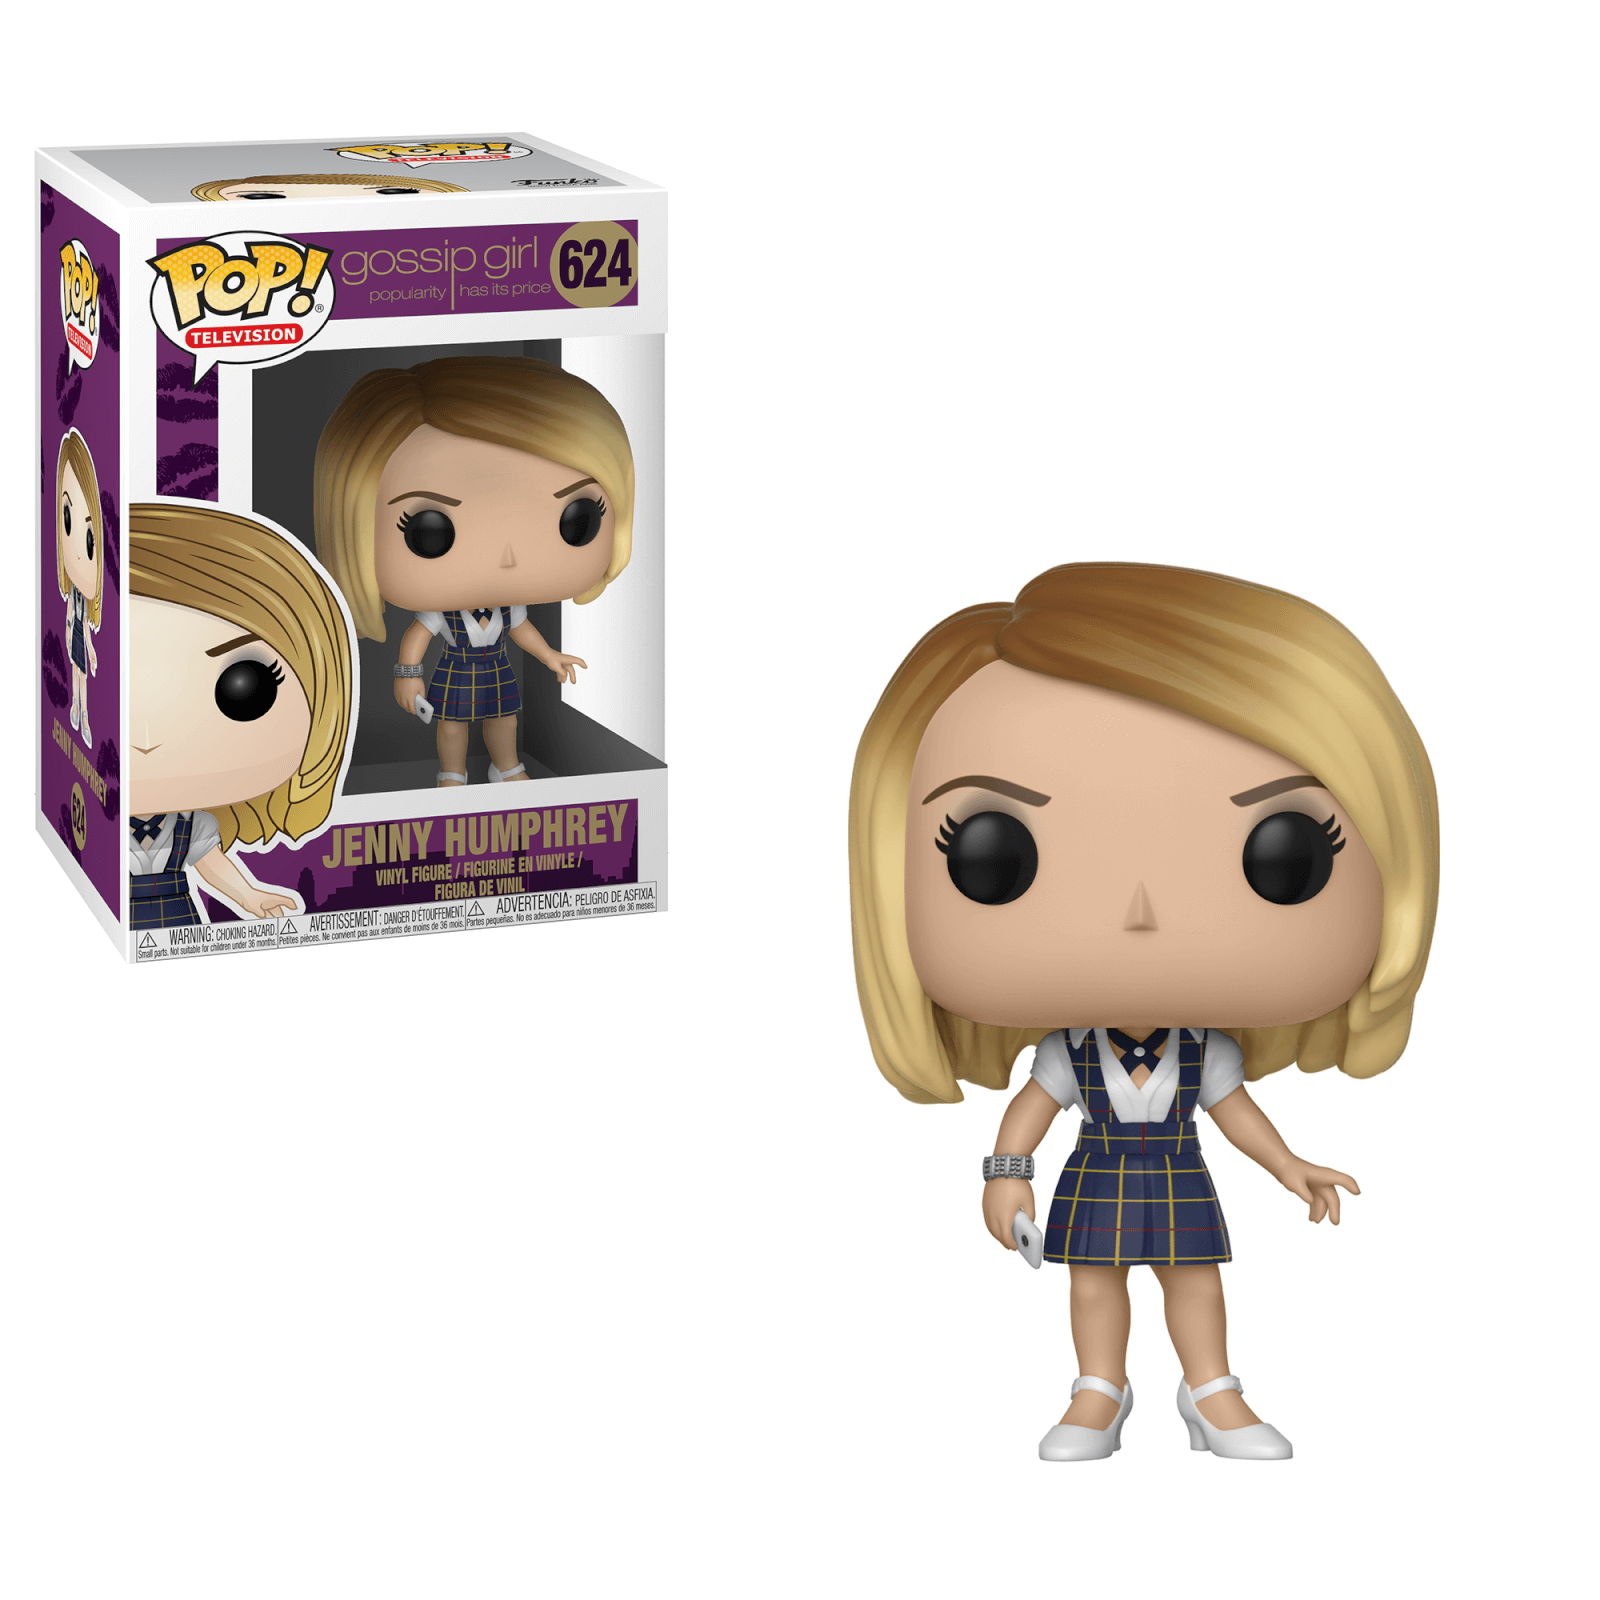 Gossip Girl Jenny Humphrey Pop! Vinyl Figure